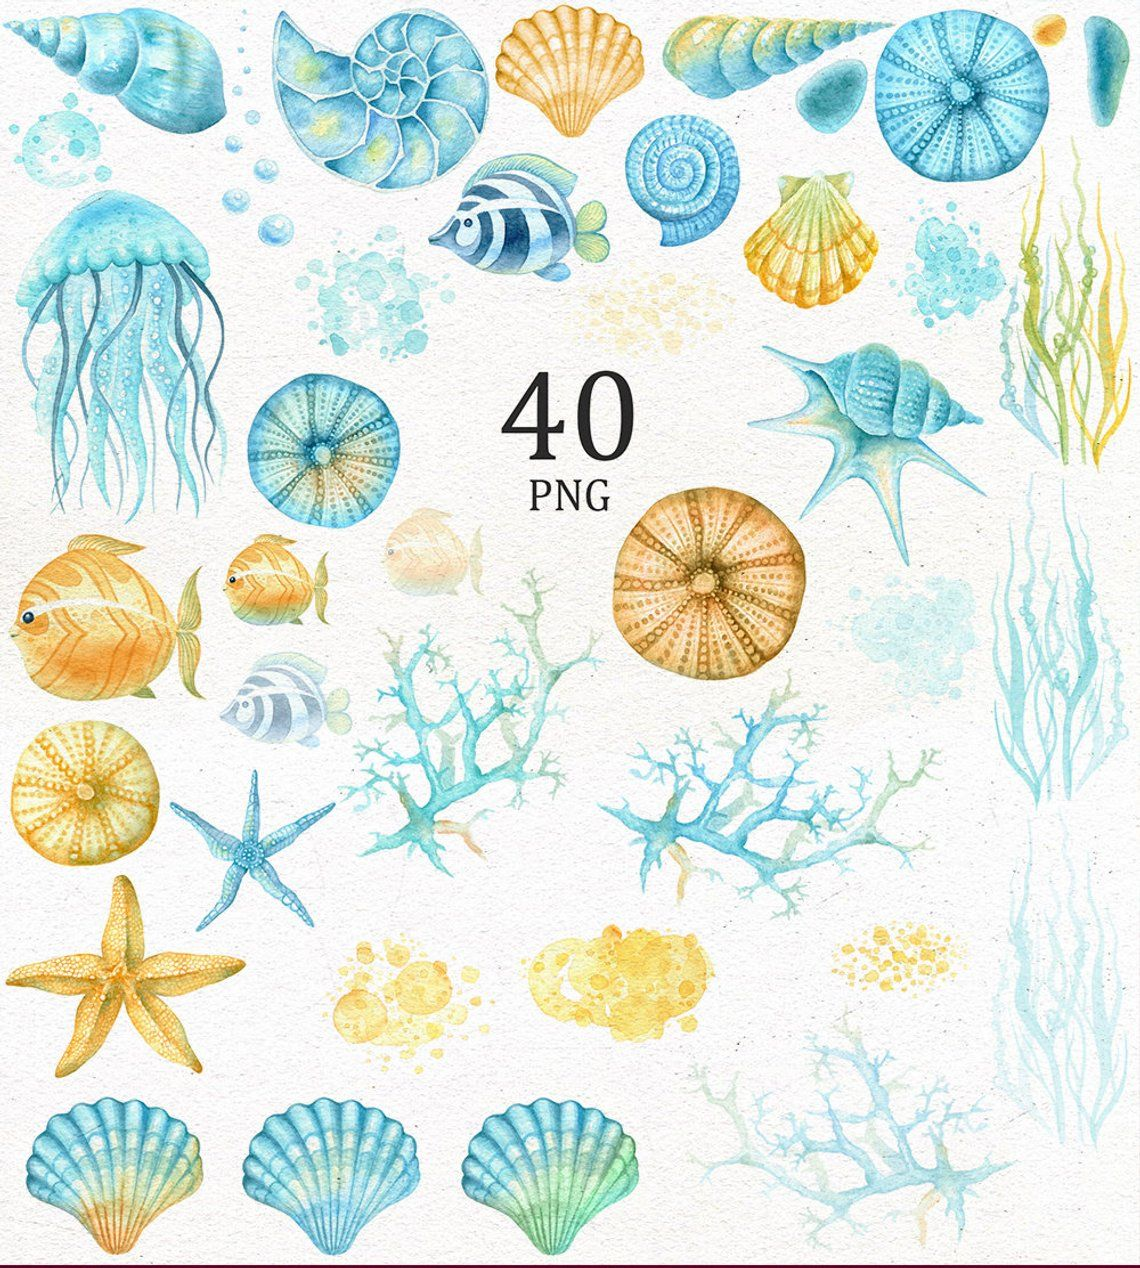 Watercolor Ocean Creatures Clipart Blue And Yellow Sea Life Clip